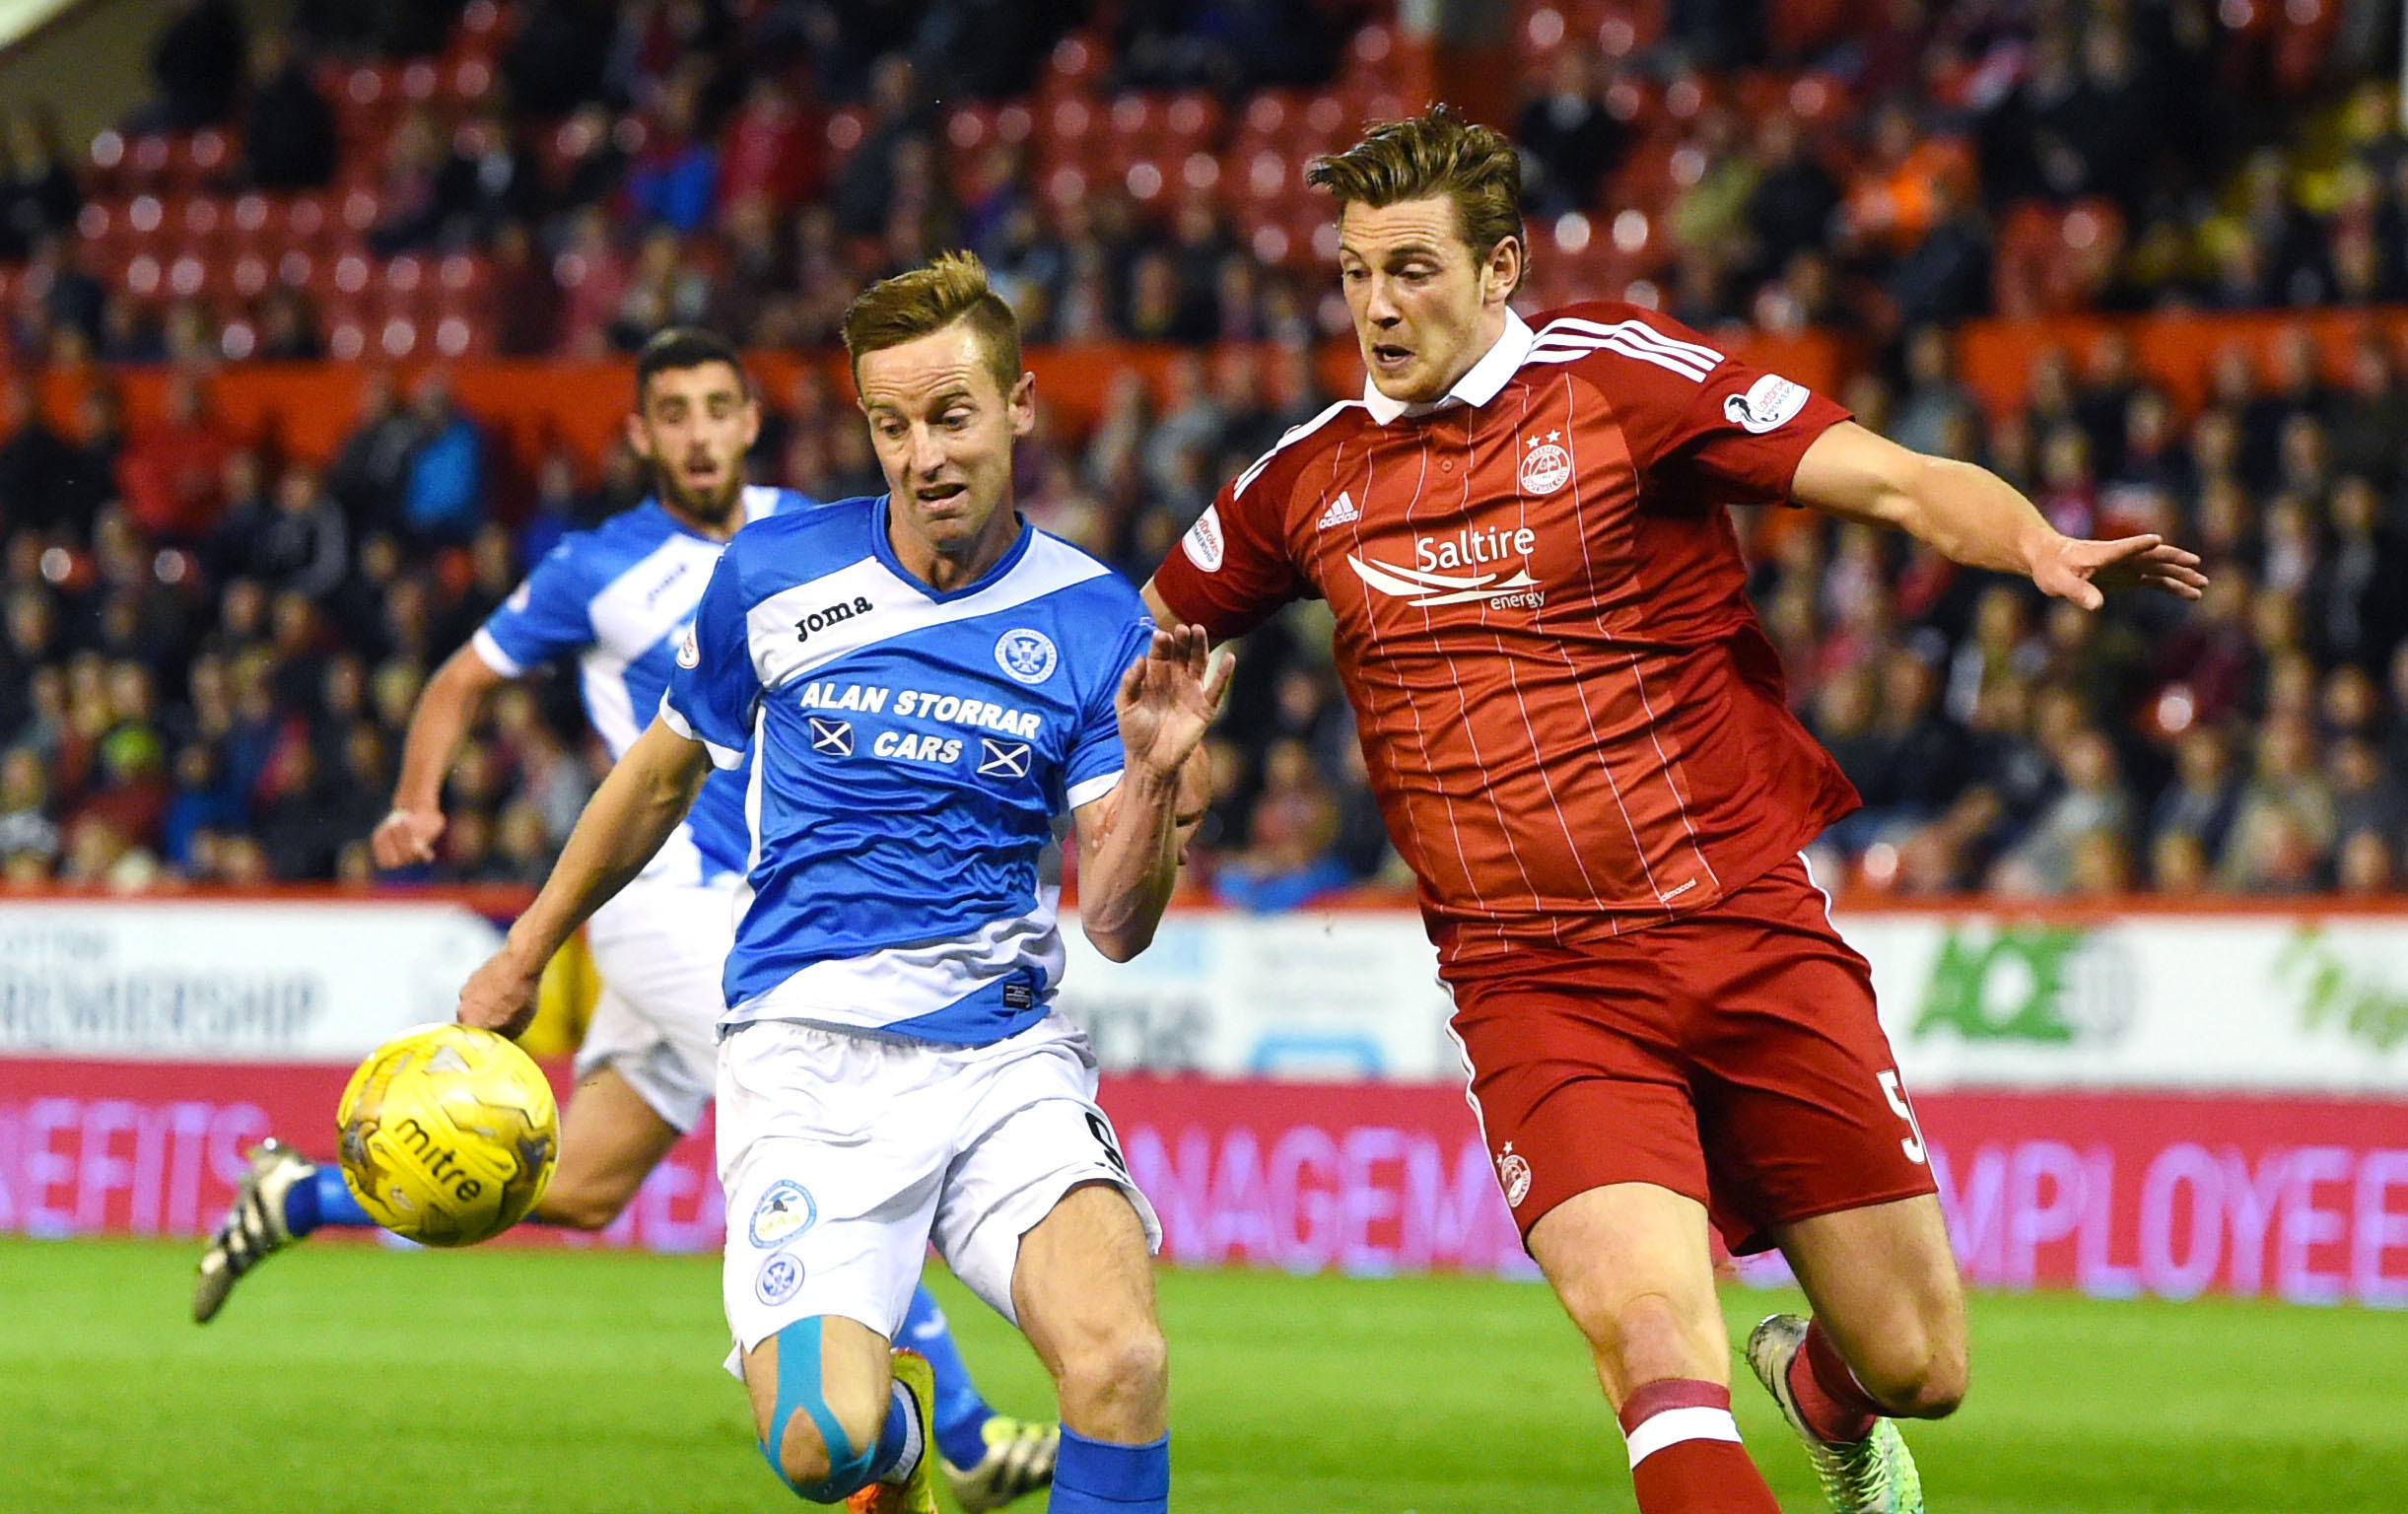 St Johnstone's Steven MacLean battles with Ash Taylor.